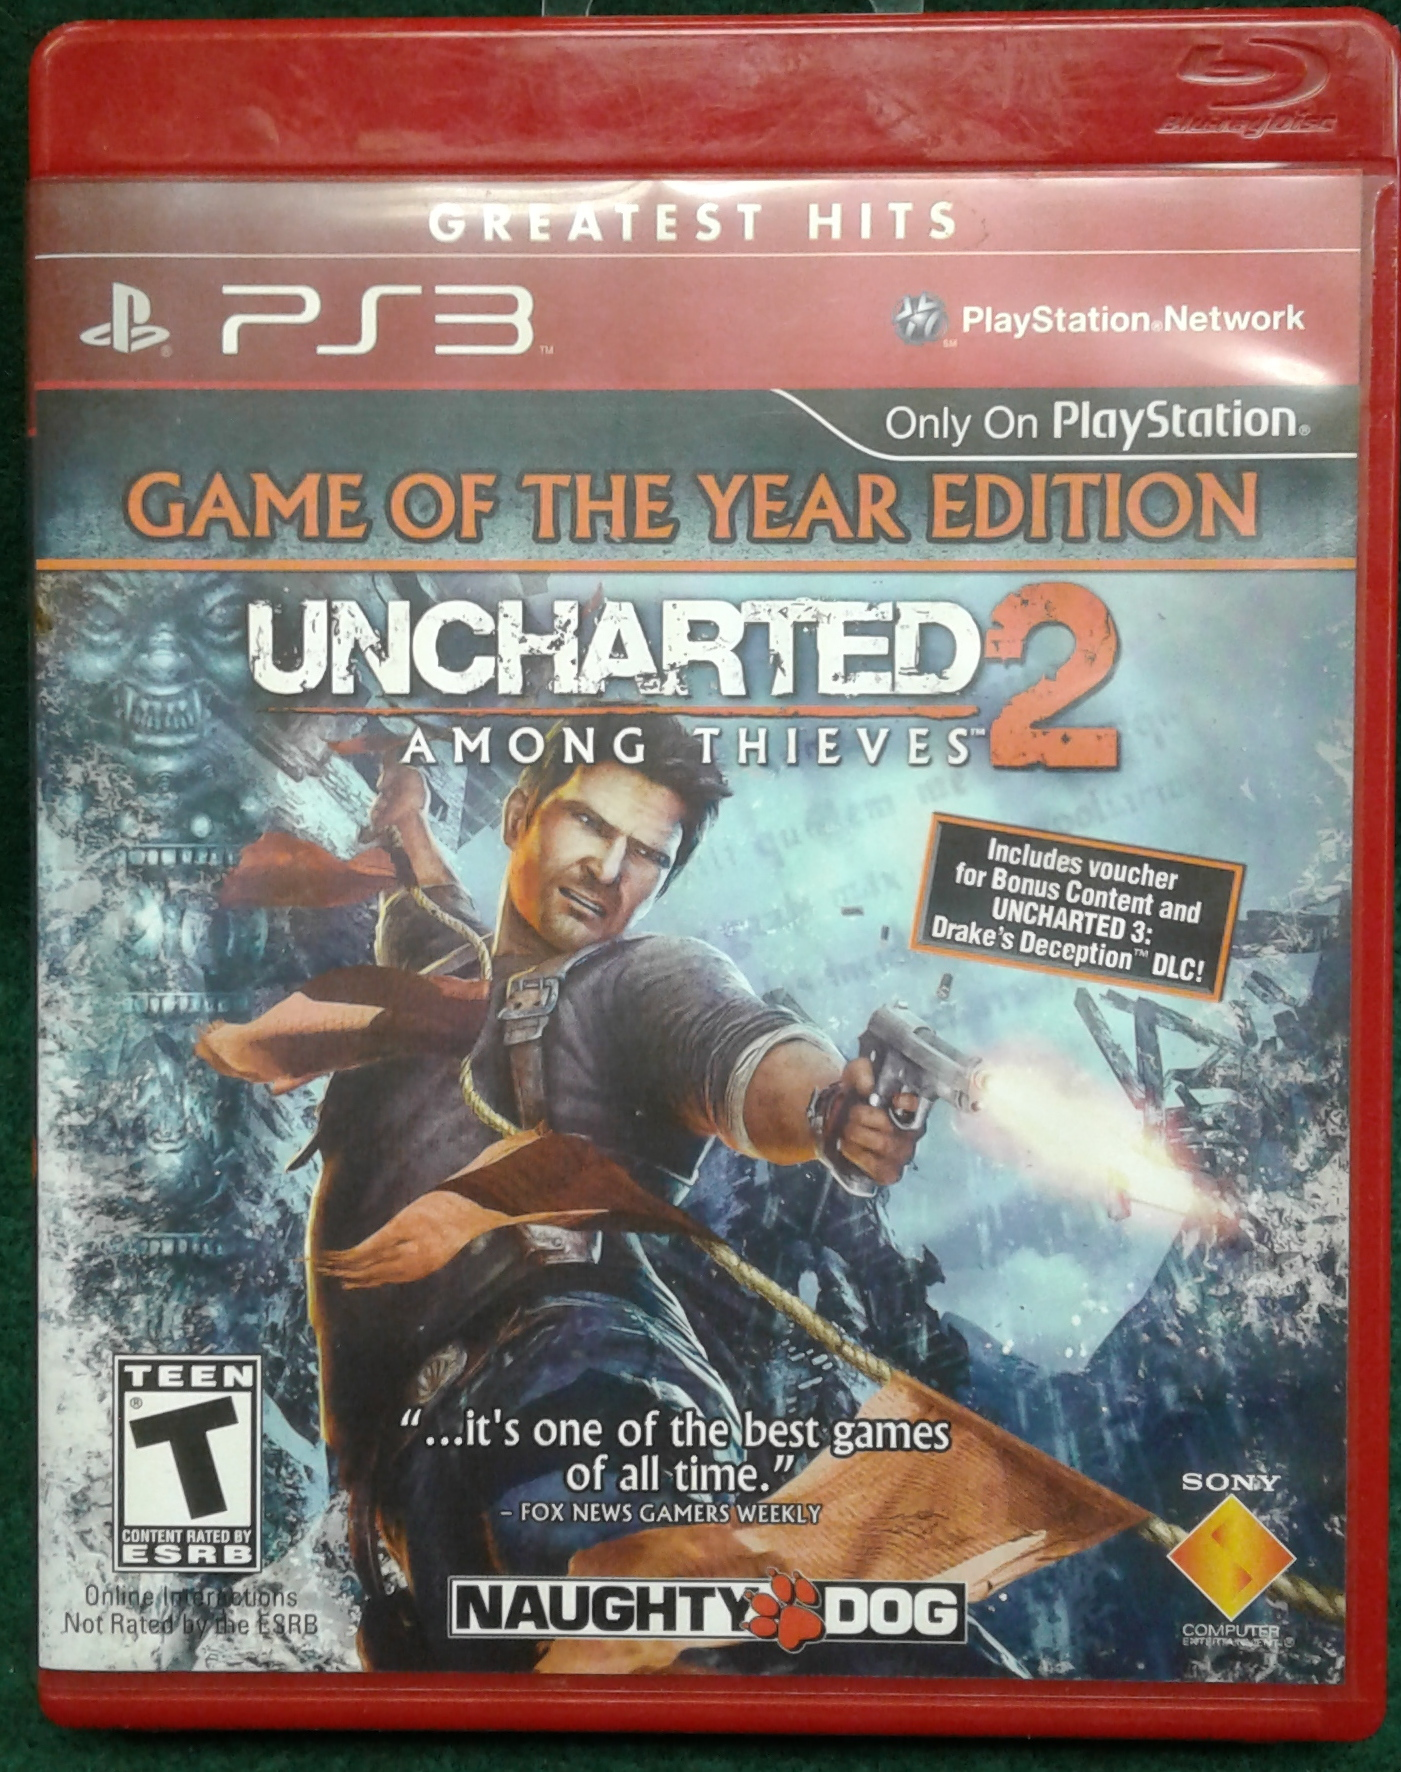 UNCHARTED 2: AMONG THIEVES GAME OF THE YEAR EDITION - PS3 GAME